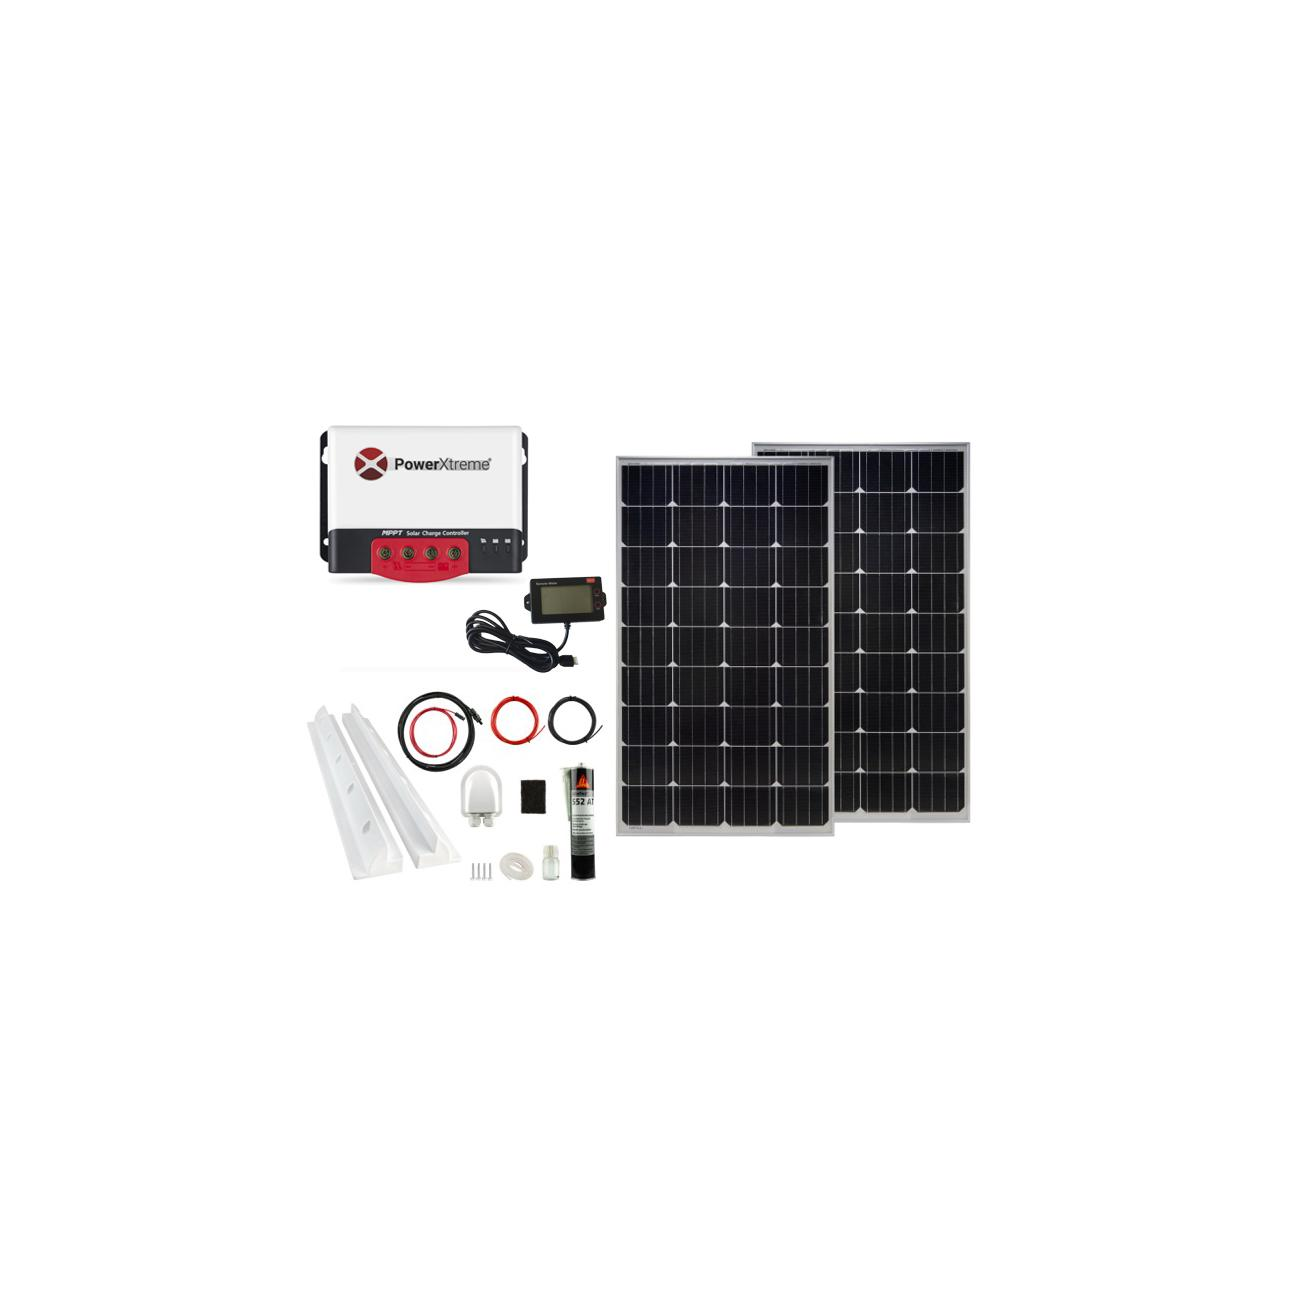 Power XS20s Solar MPPT With Display 260W Package